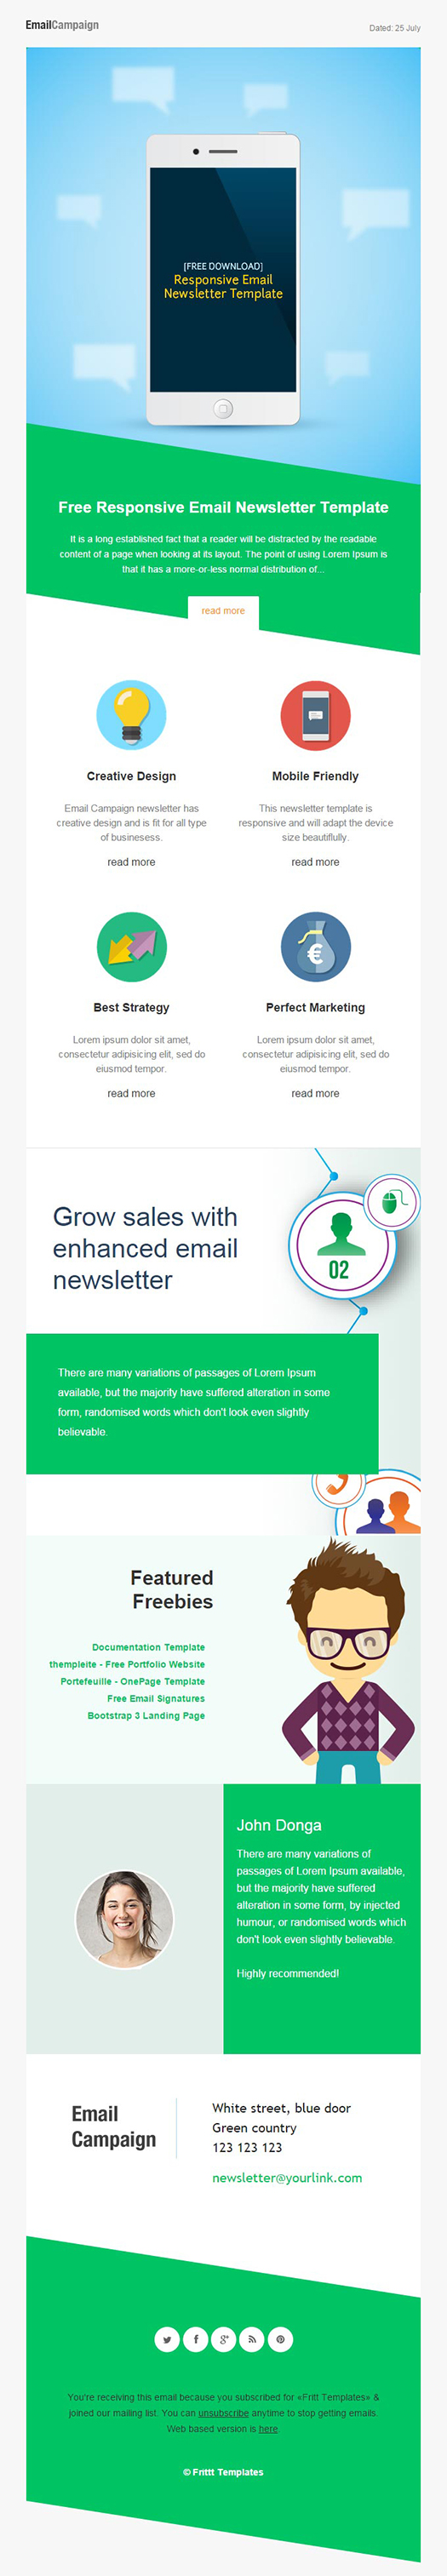 Responsive Email Newsletter Template FREE DOWNLOAD On Behance - Bootstrap newsletter template